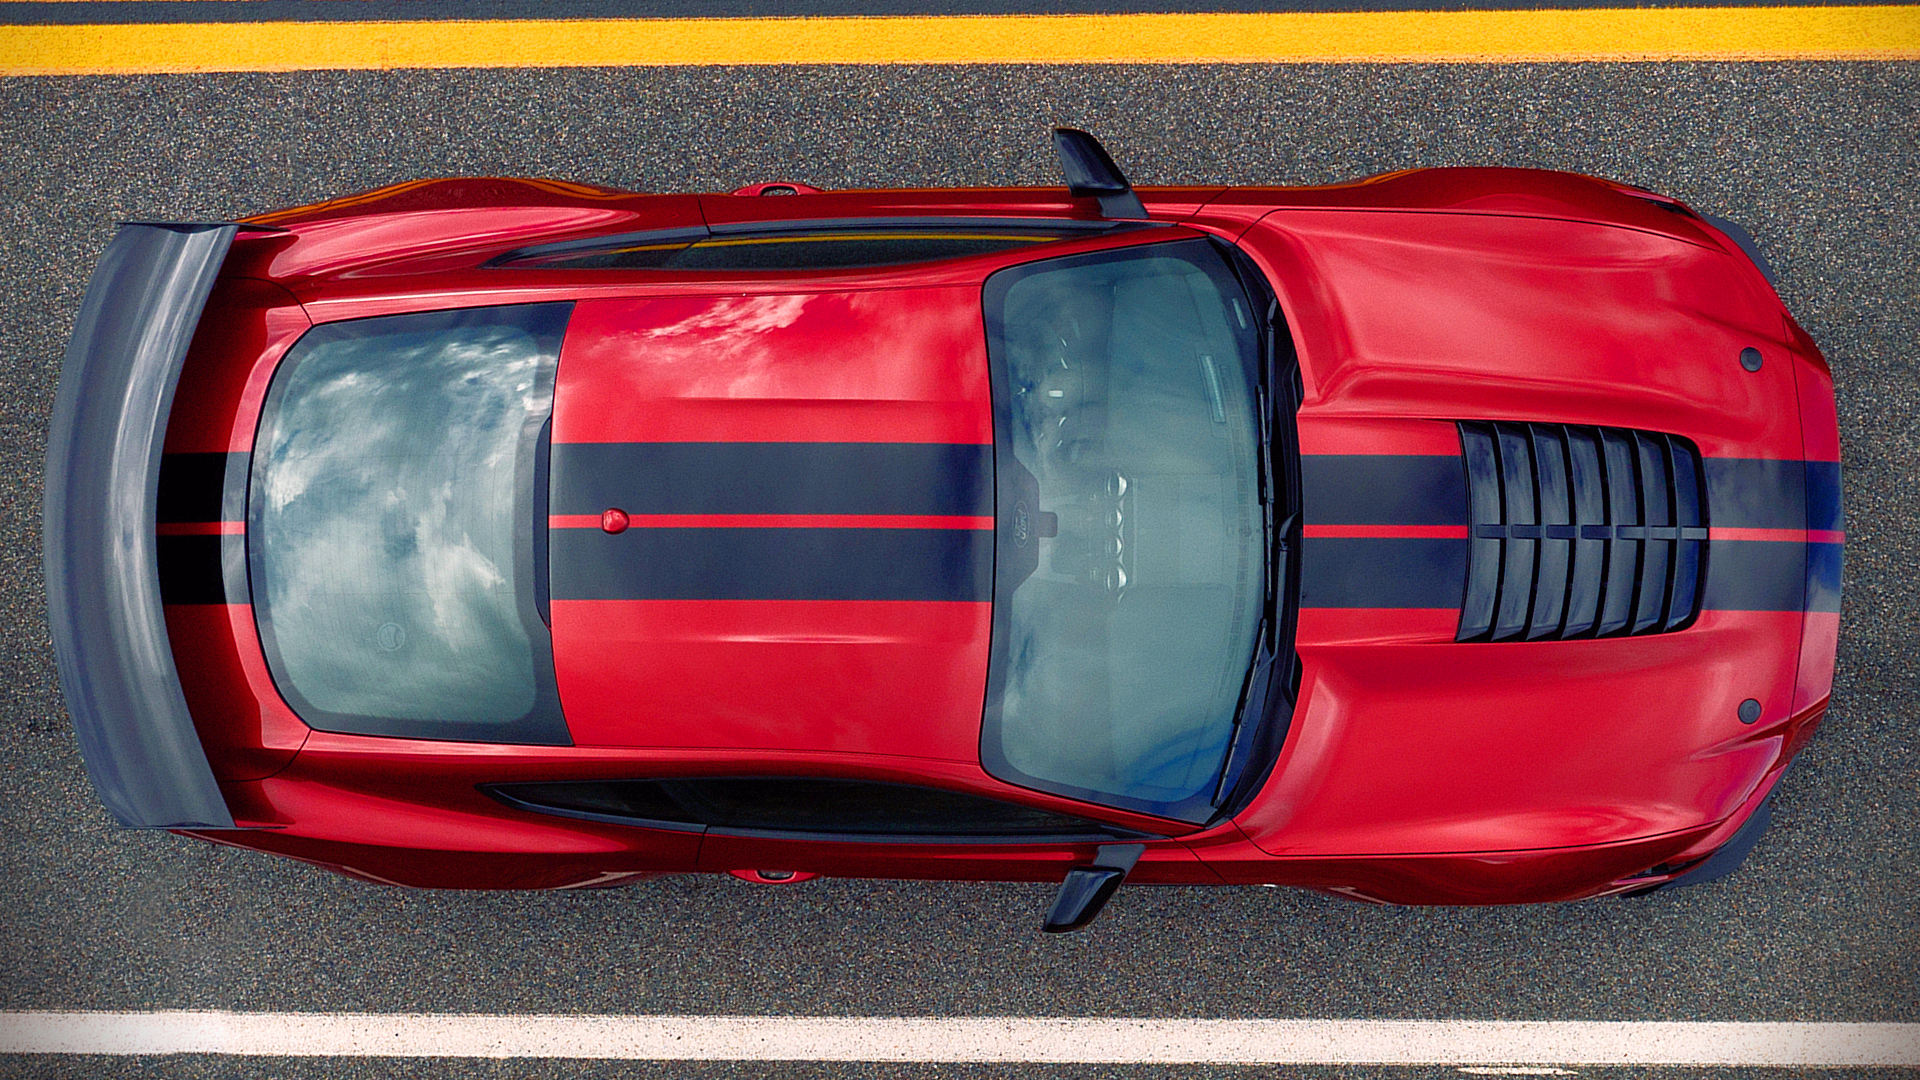 2020 Ford Mustang Shelby GT500 Red Images